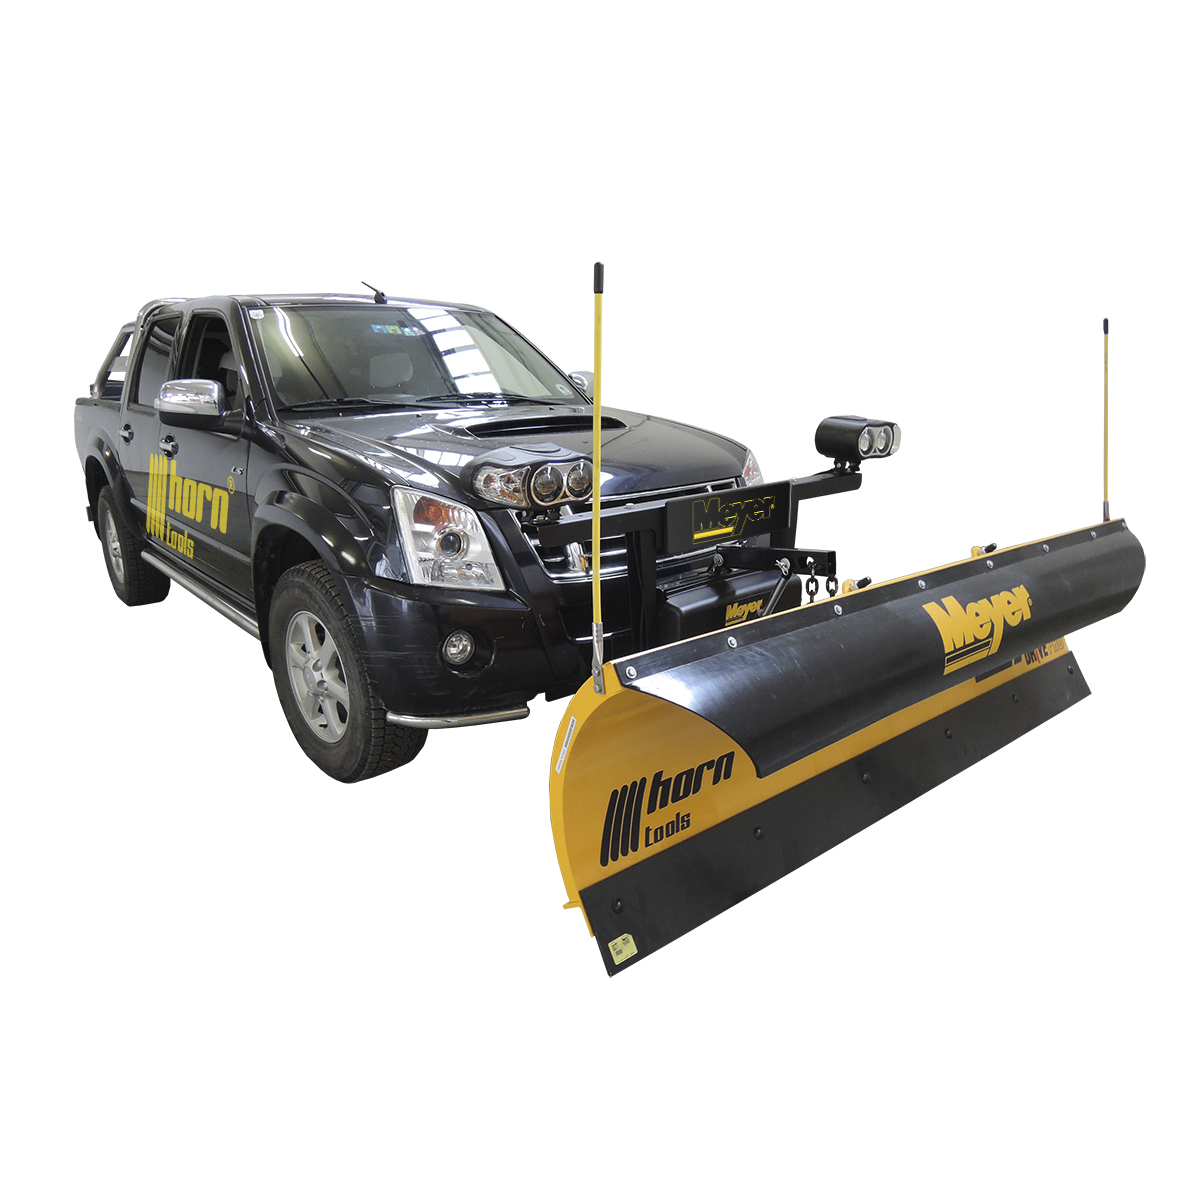 schneepflug system isuzu dmax 2003 11 203cm drivepro aebi schmidt holding ag meyer elektro hydraulis. Black Bedroom Furniture Sets. Home Design Ideas